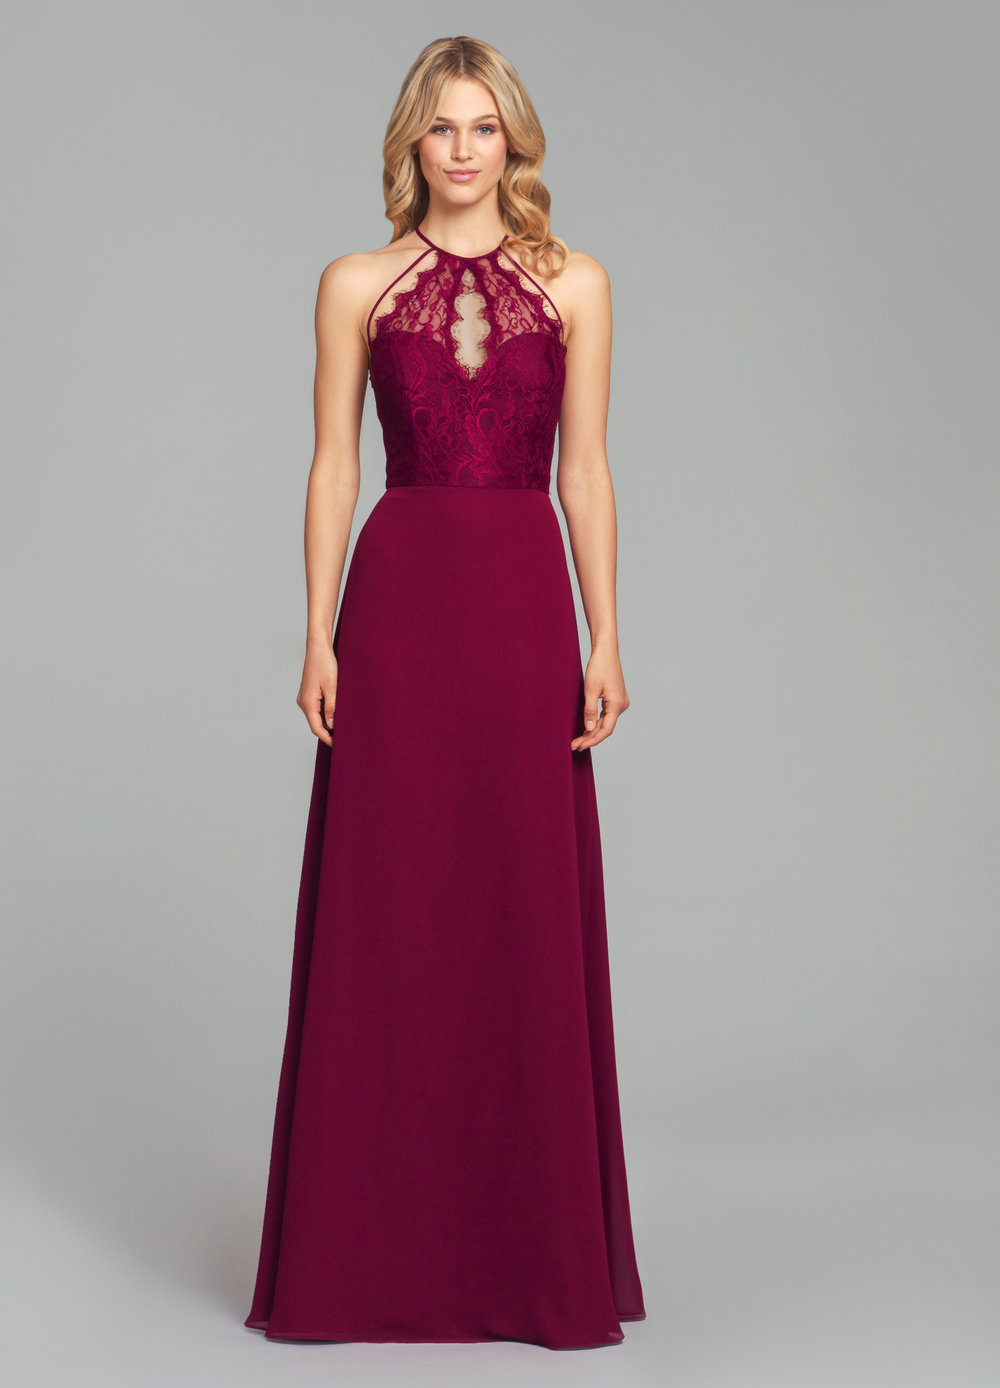 hayley-paige-occasions-bridesmaids-fall-2018-style-5857_2 (1).jpg